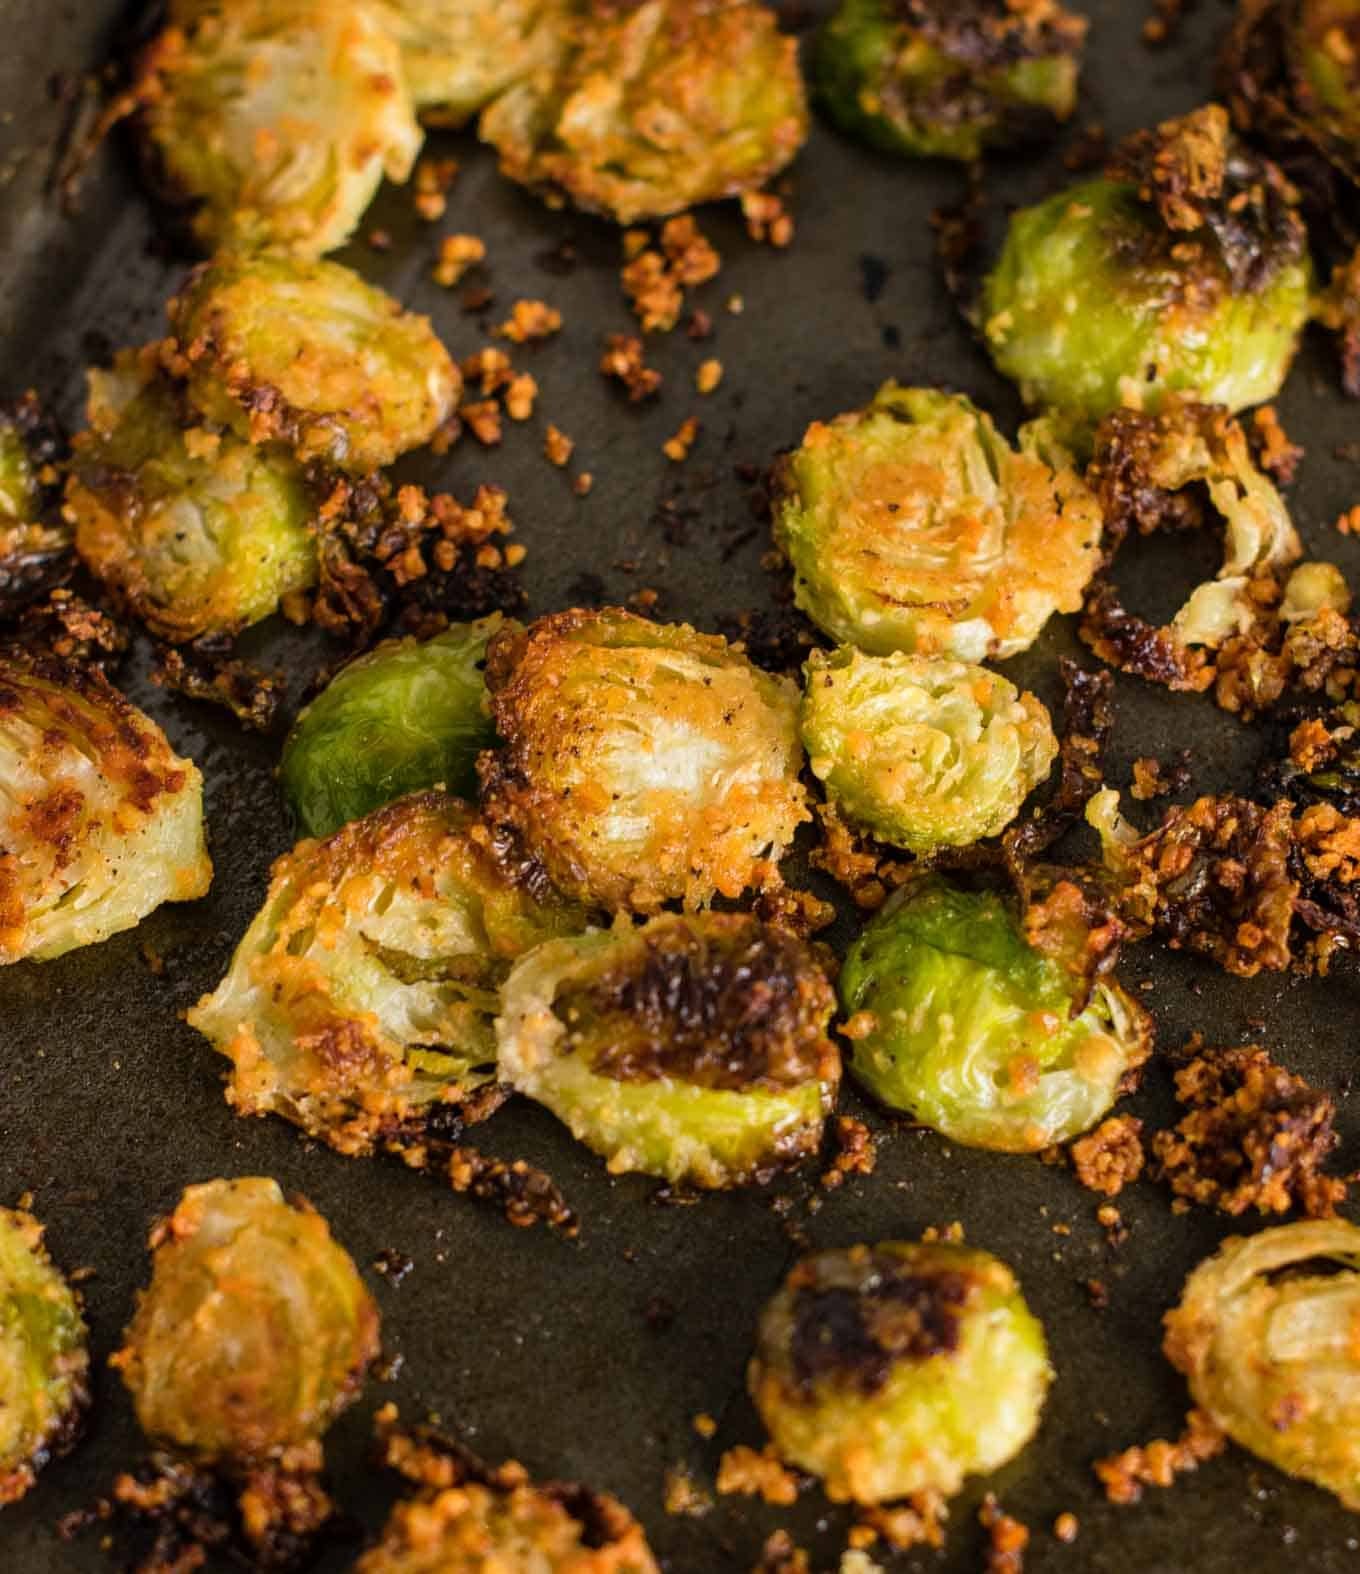 roasted brussel sprouts chips - these are so good I could eat the whole pan myself! #brusselsprouts #brusselsproutchips #dinner #sidedish #vegetarian